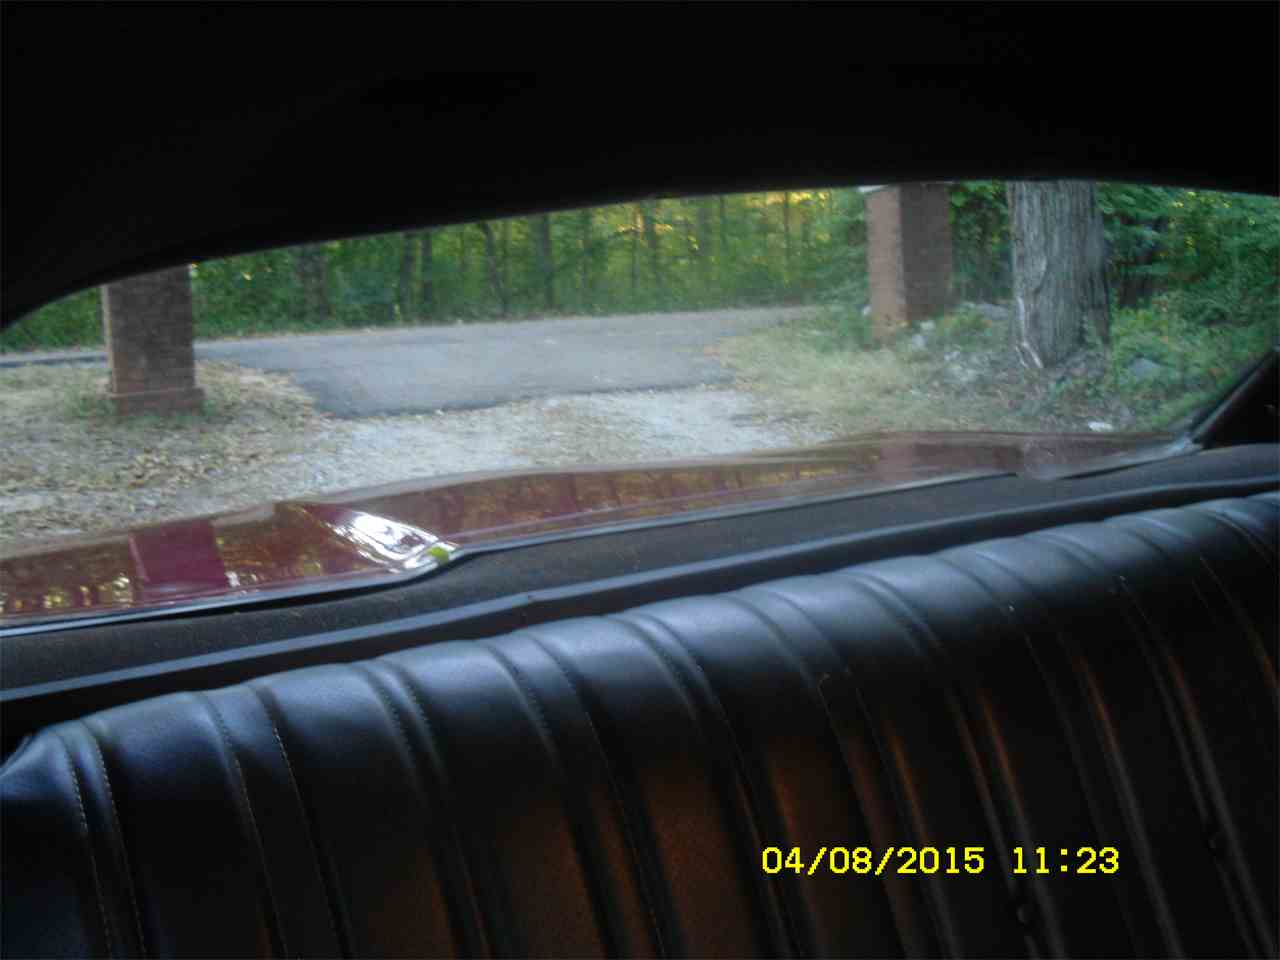 Large Picture of '73 Chevrolet Impala located in Georgia - $14,500.00 Offered by a Private Seller - JIZ7